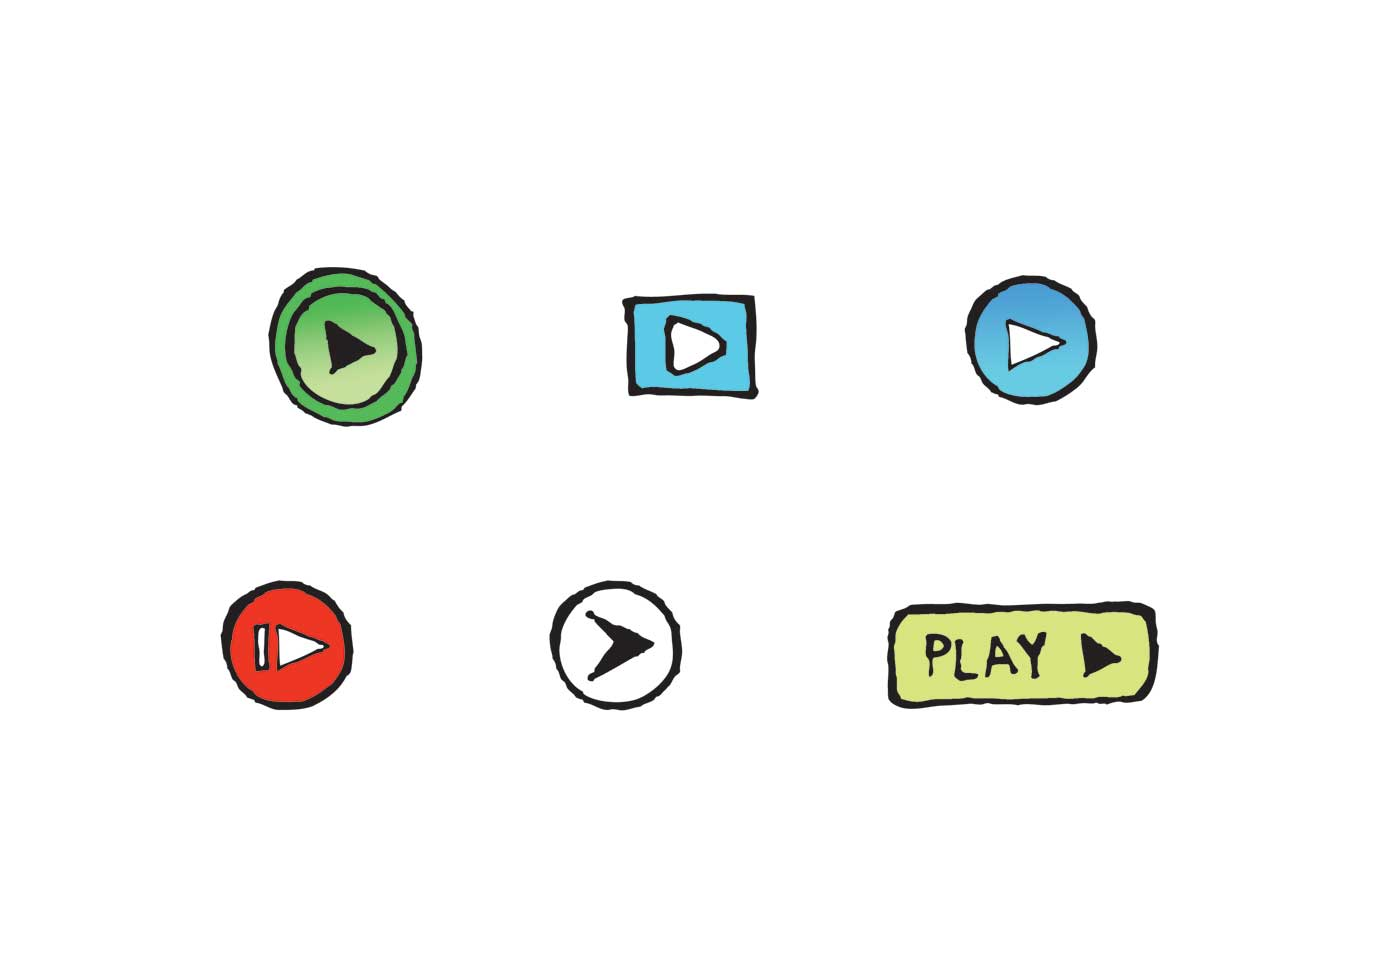 Free Play Button Icon Vector Series - Download Free Vector Art, Stock Graphics & Images